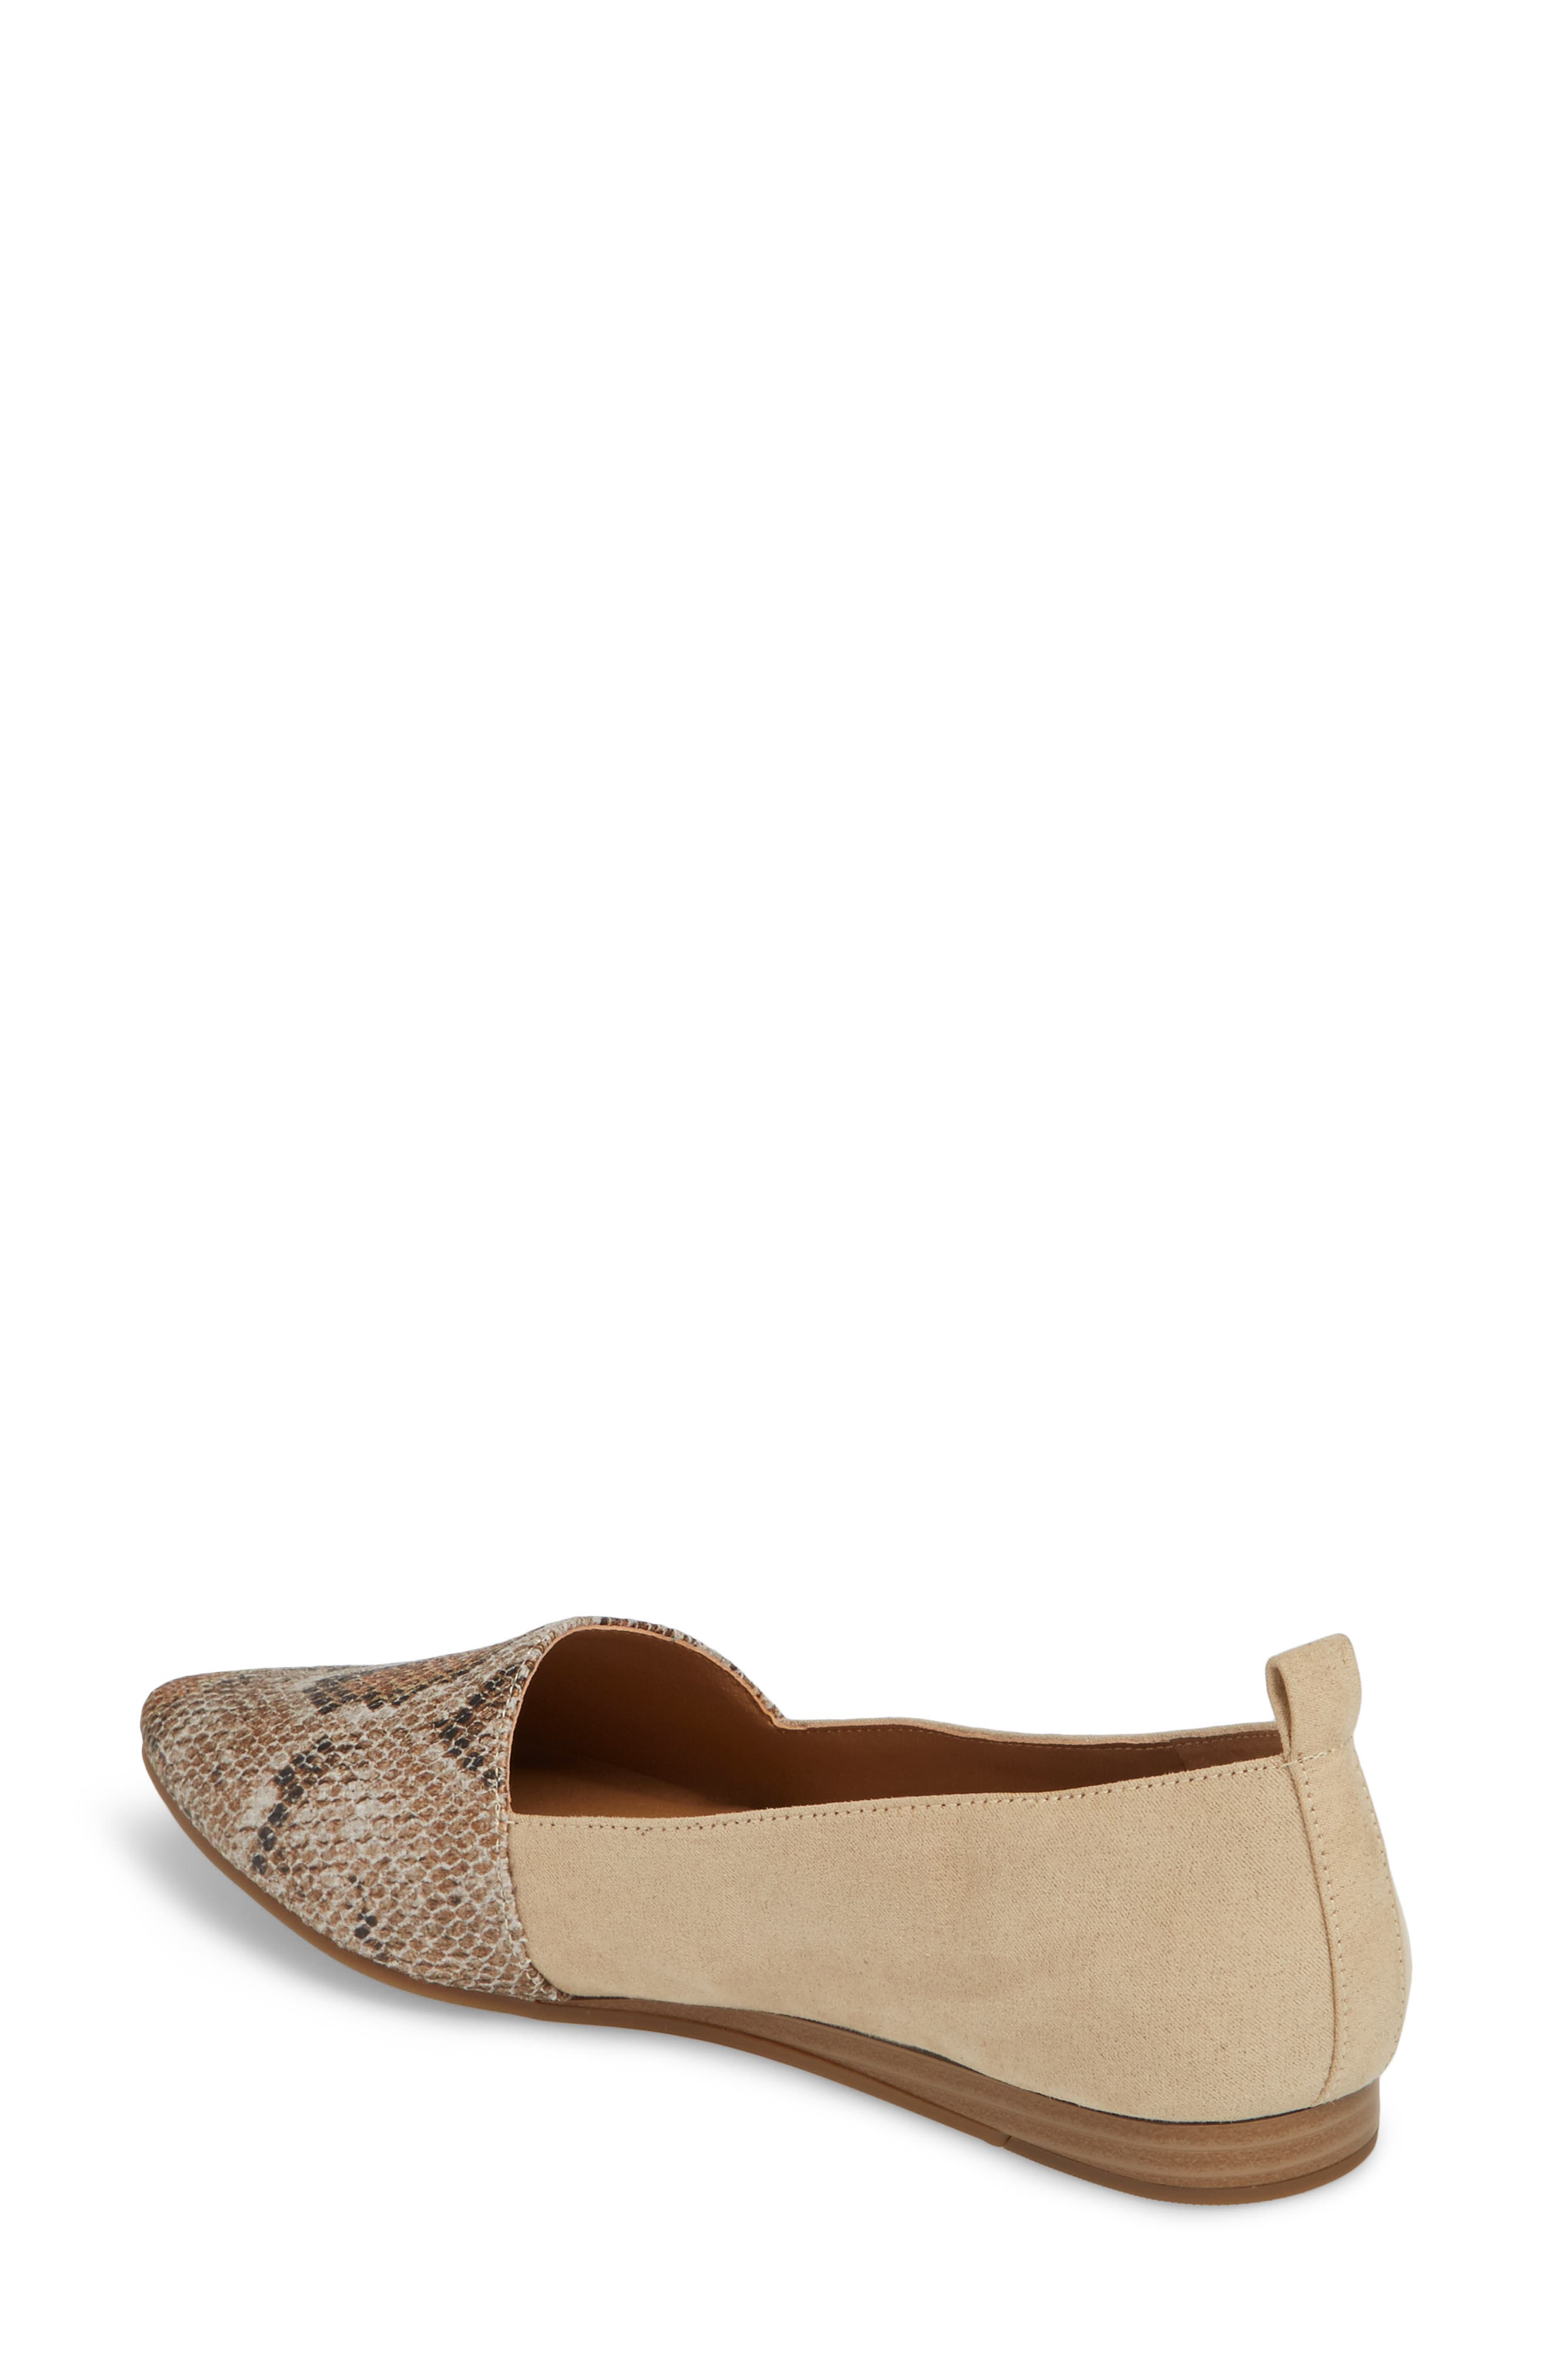 Beechmer Pointy Toe Flat,                             Alternate thumbnail 7, color,